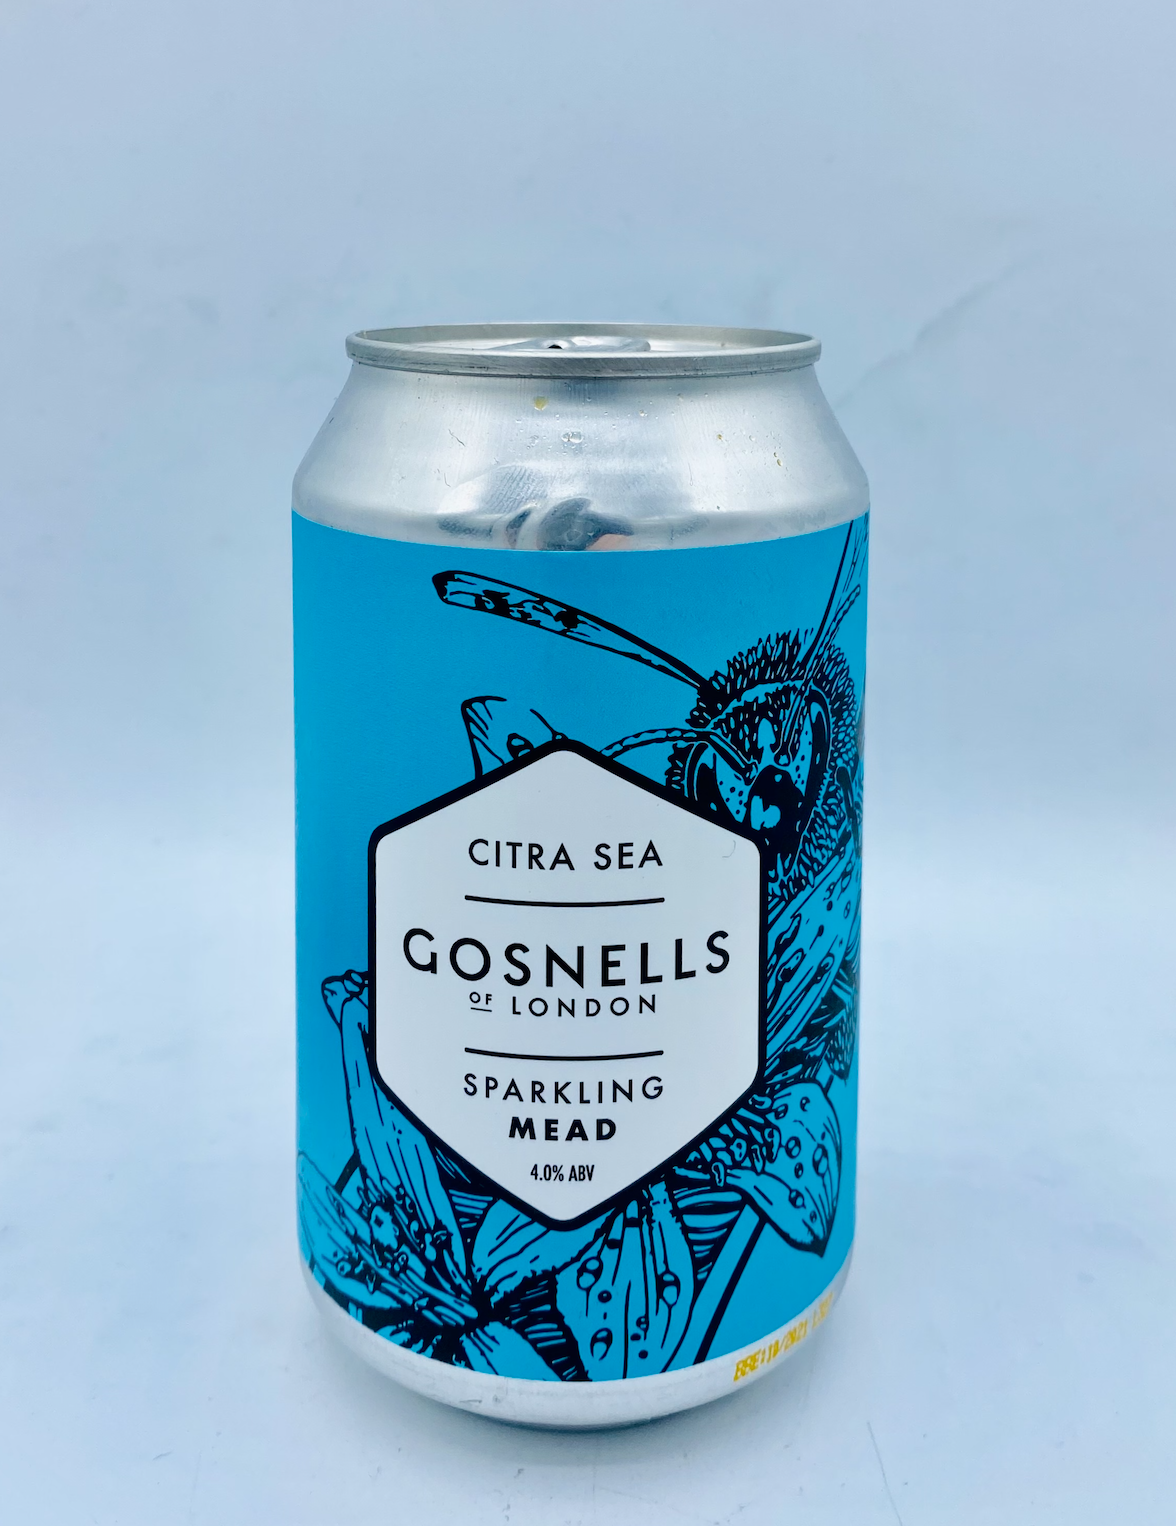 Gosnells - Citra Sea Mead 4%